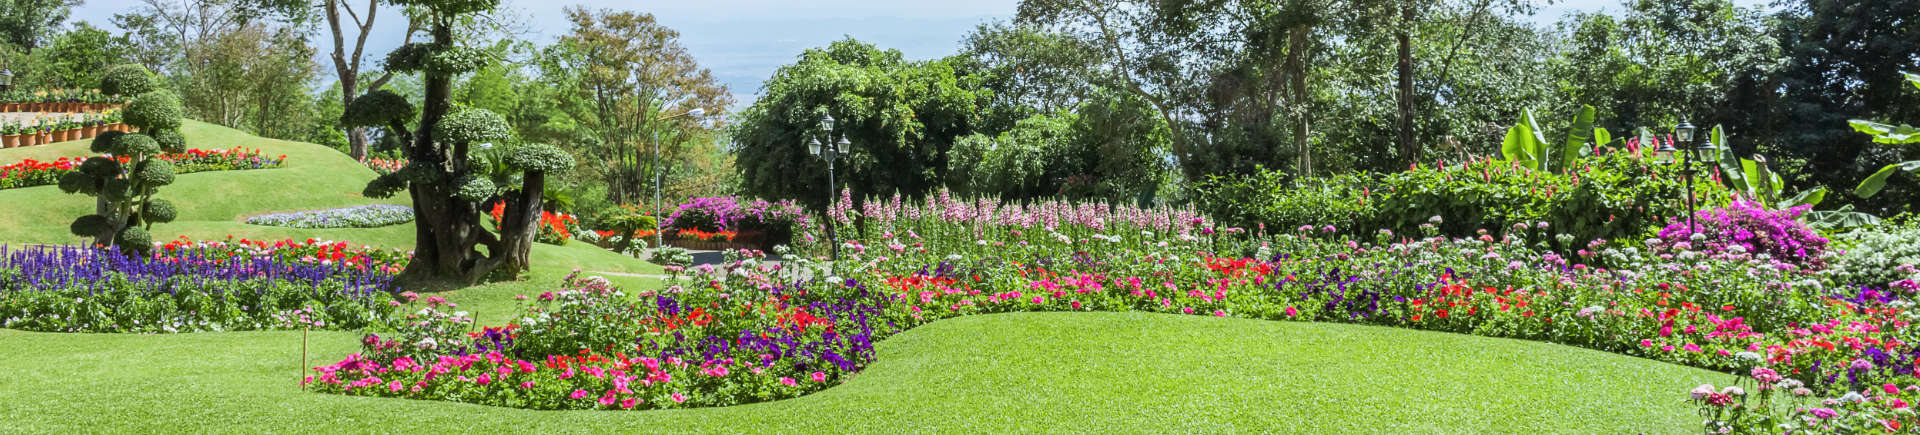 manicured garden with blooming seasonal flowers and shaped trees